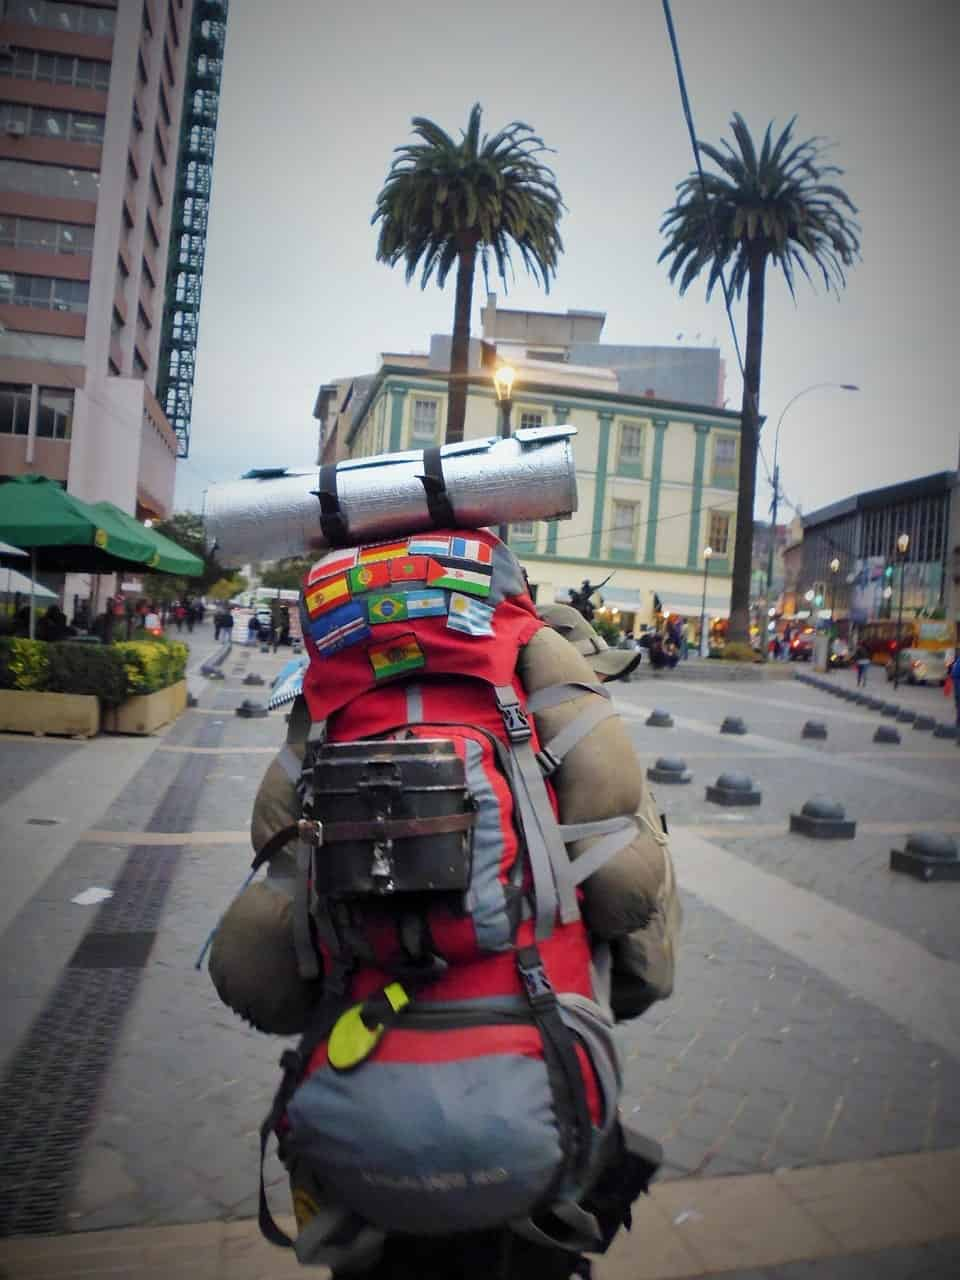 Backpackers can stay at hostels, hotel or with locals